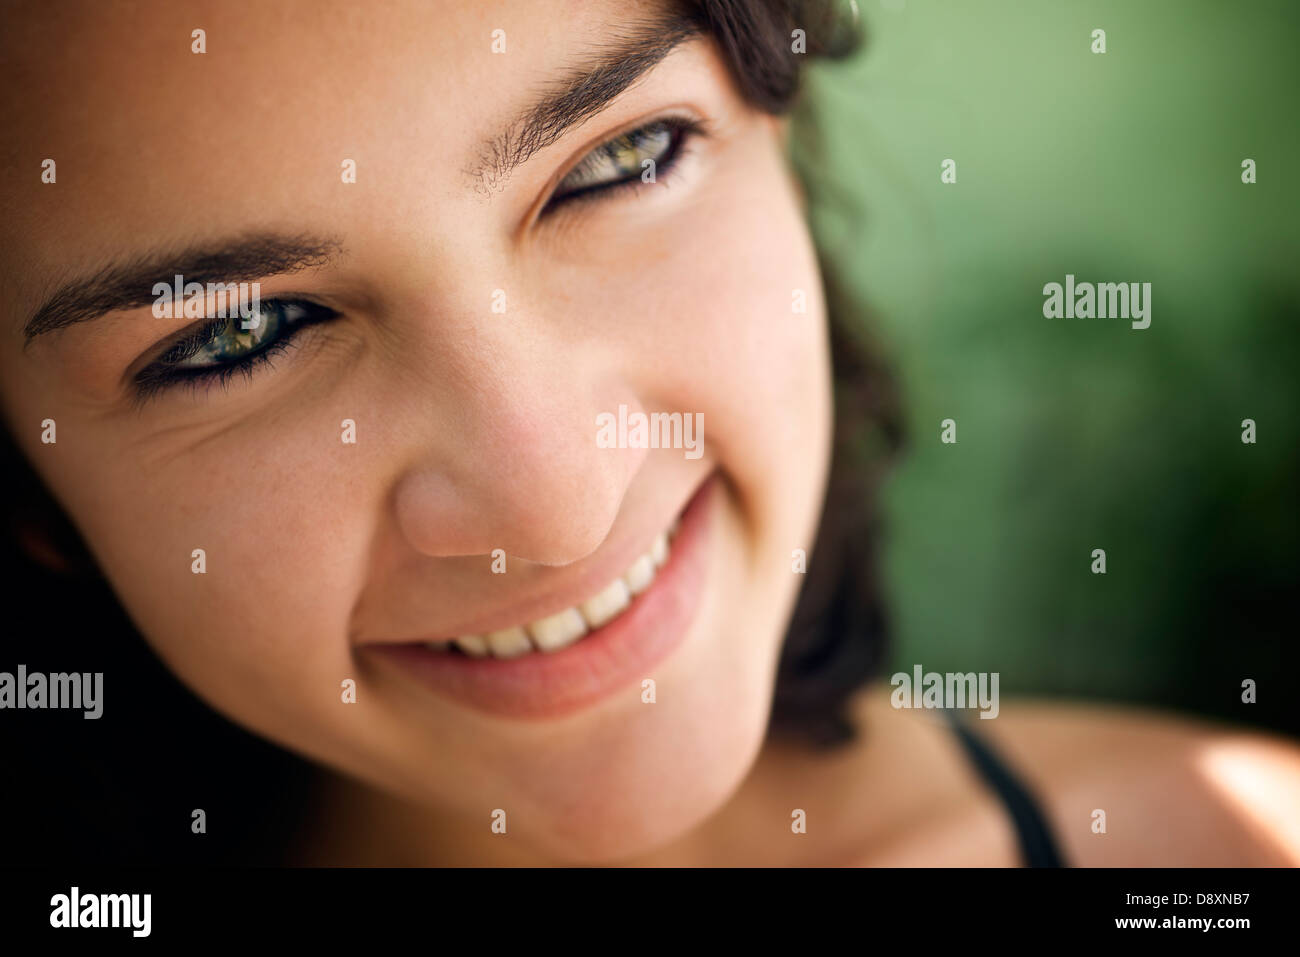 Pretty girl with green eyes, portrait of happy young hispanic woman looking at camera and smiling. Sequence - Stock Image